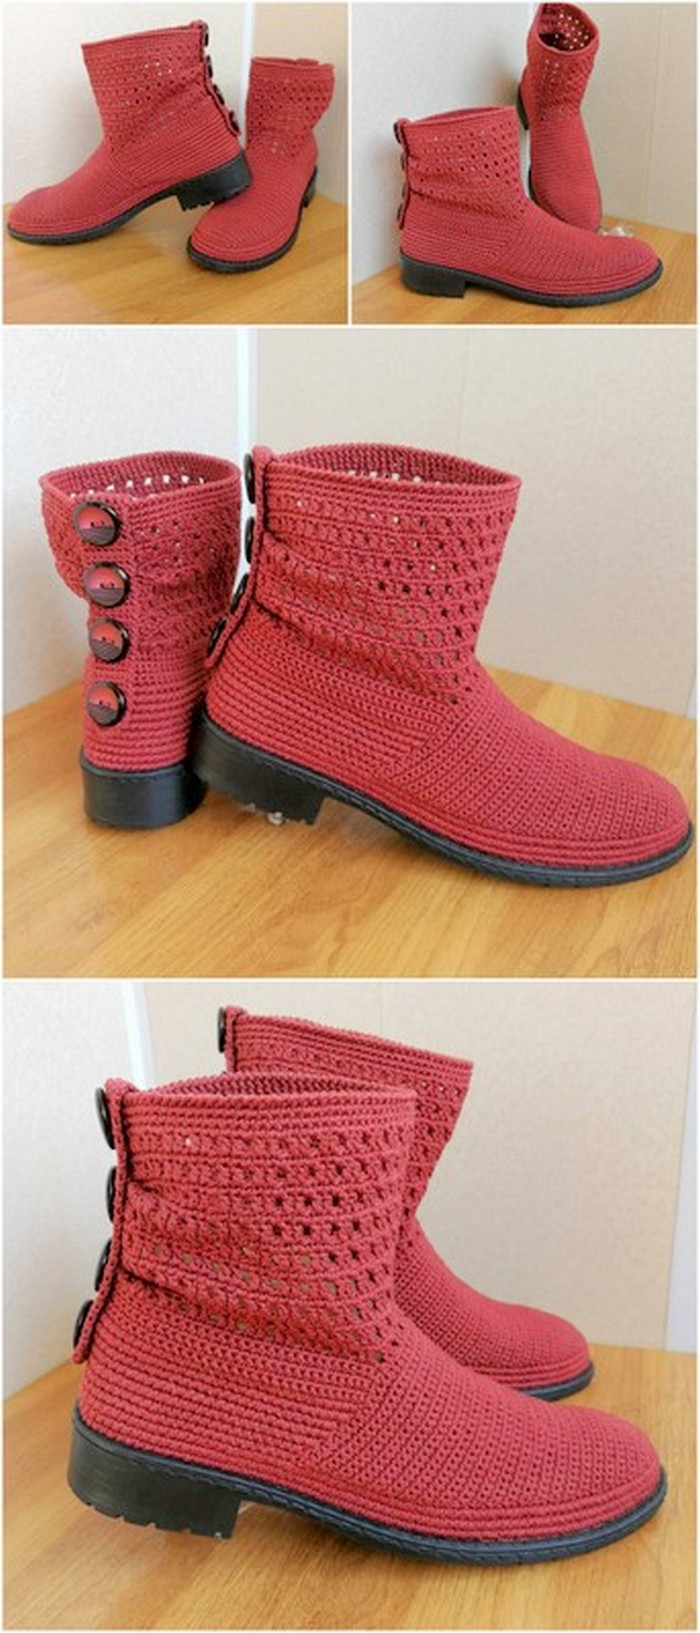 colorful crochet shoes design